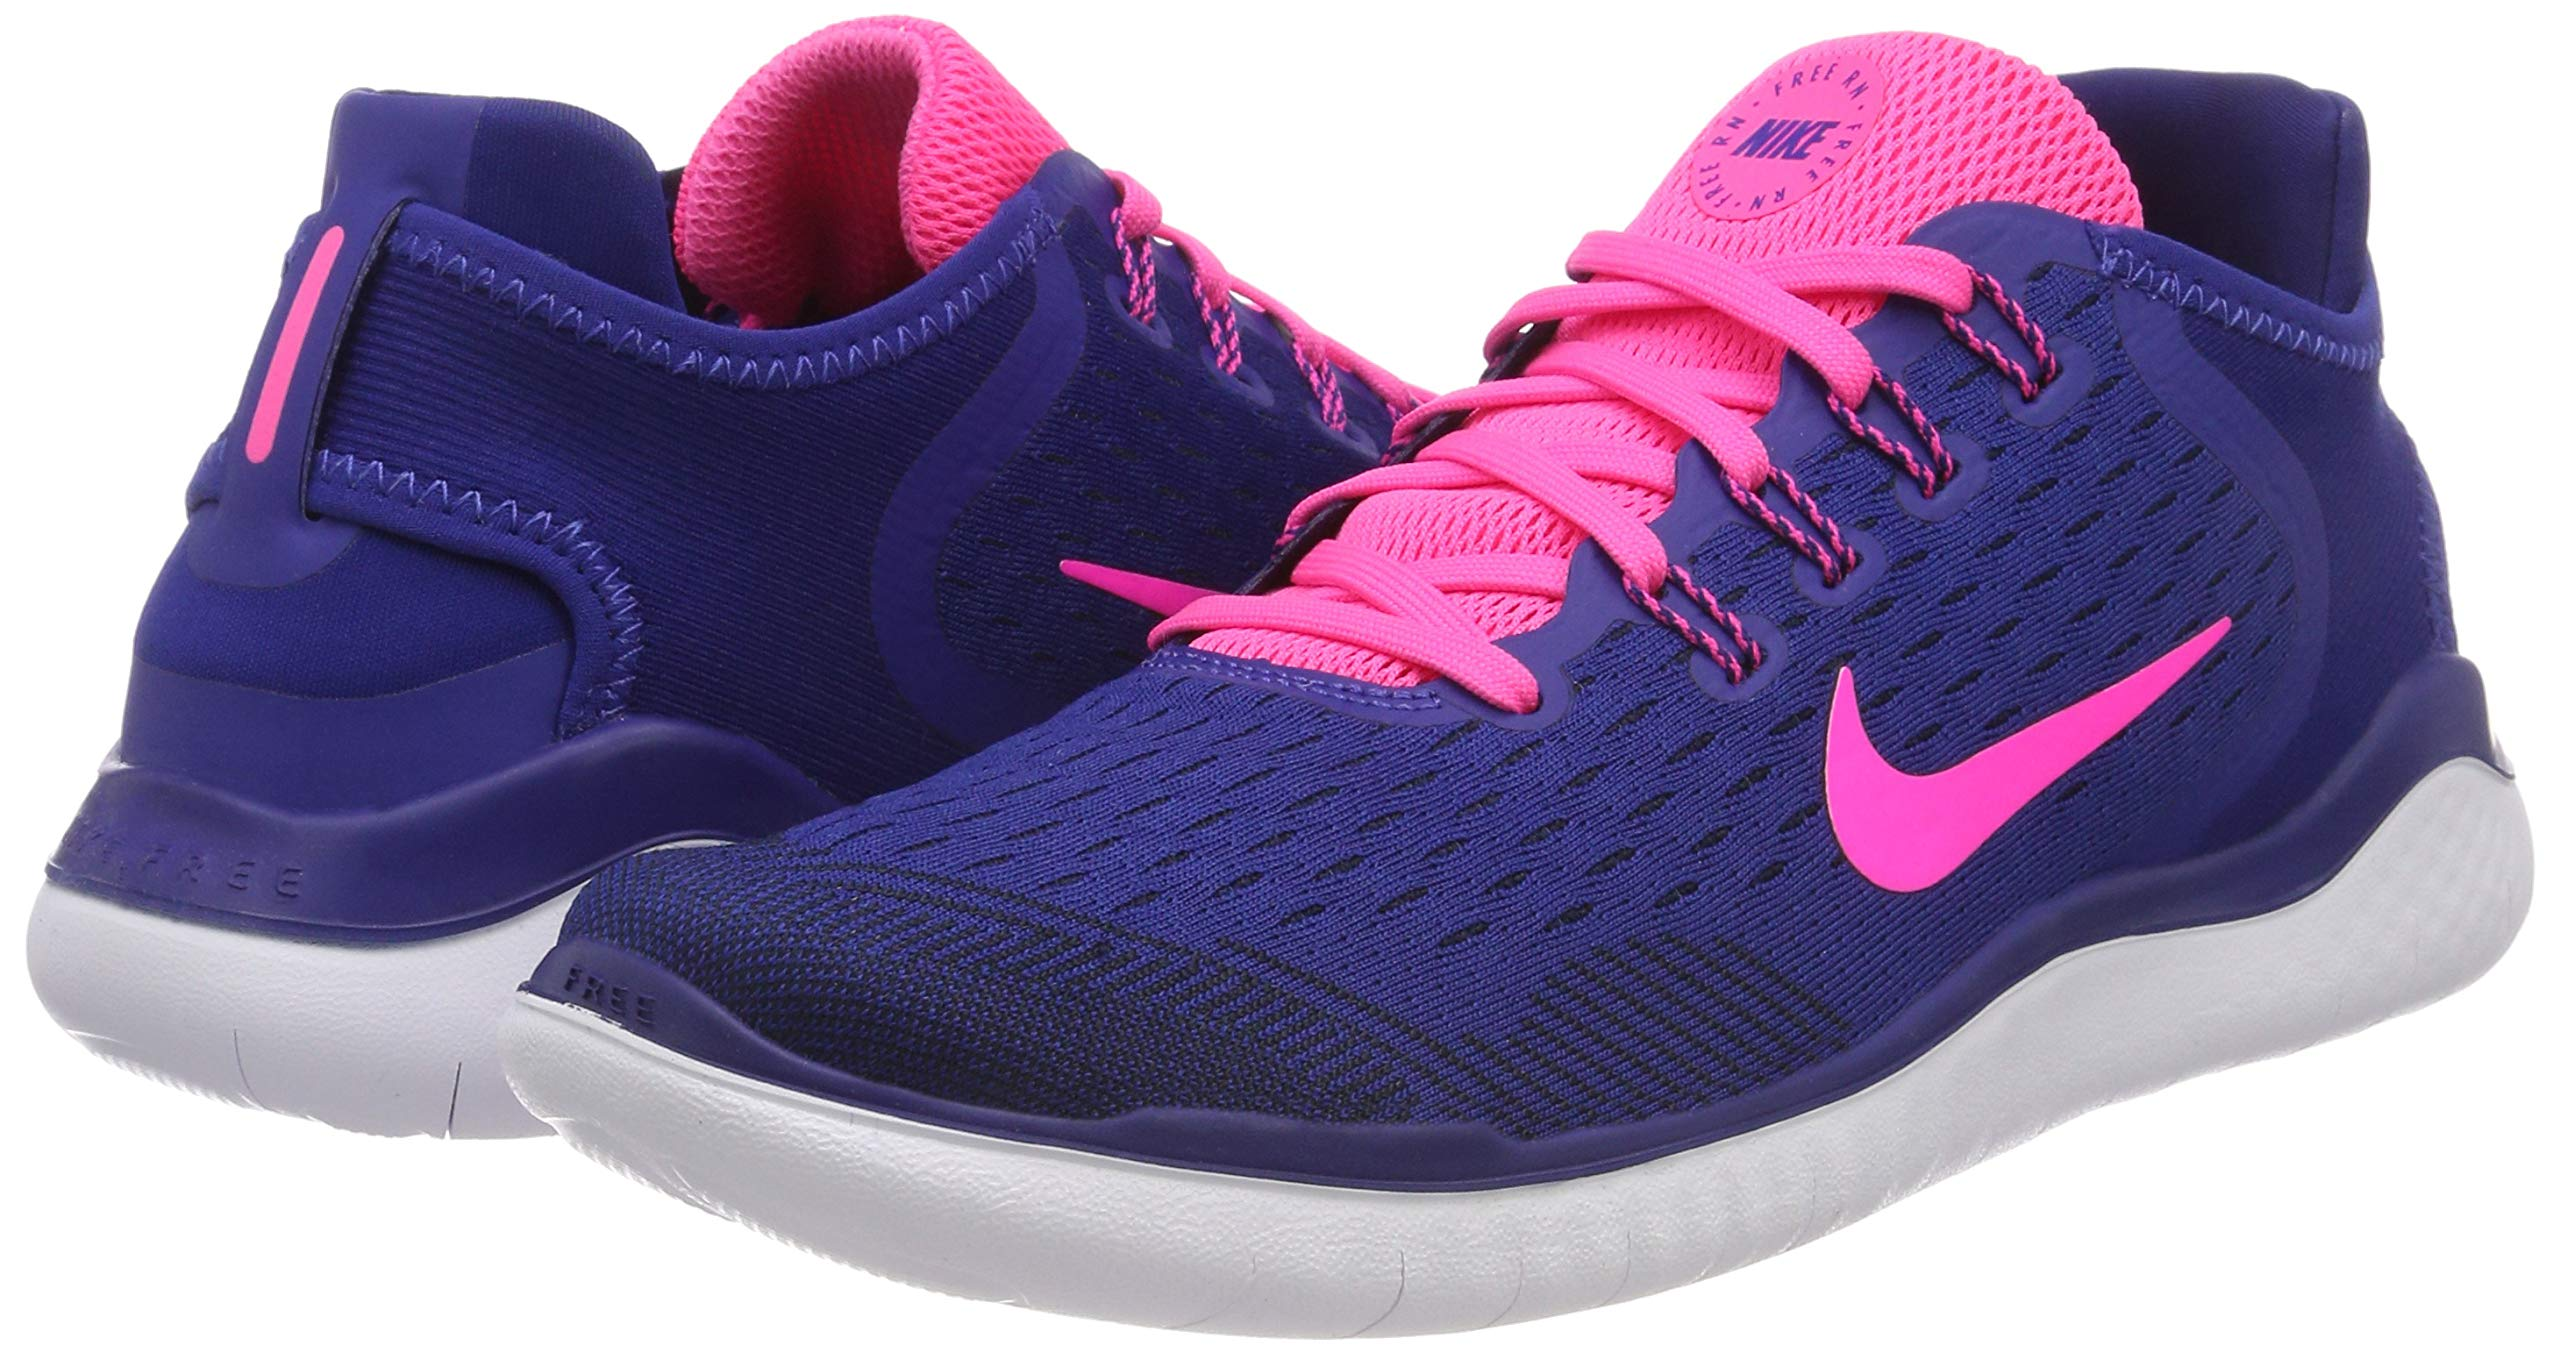 81woJsrMuBL - Nike Women's Free 2018 Competition Running Shoes